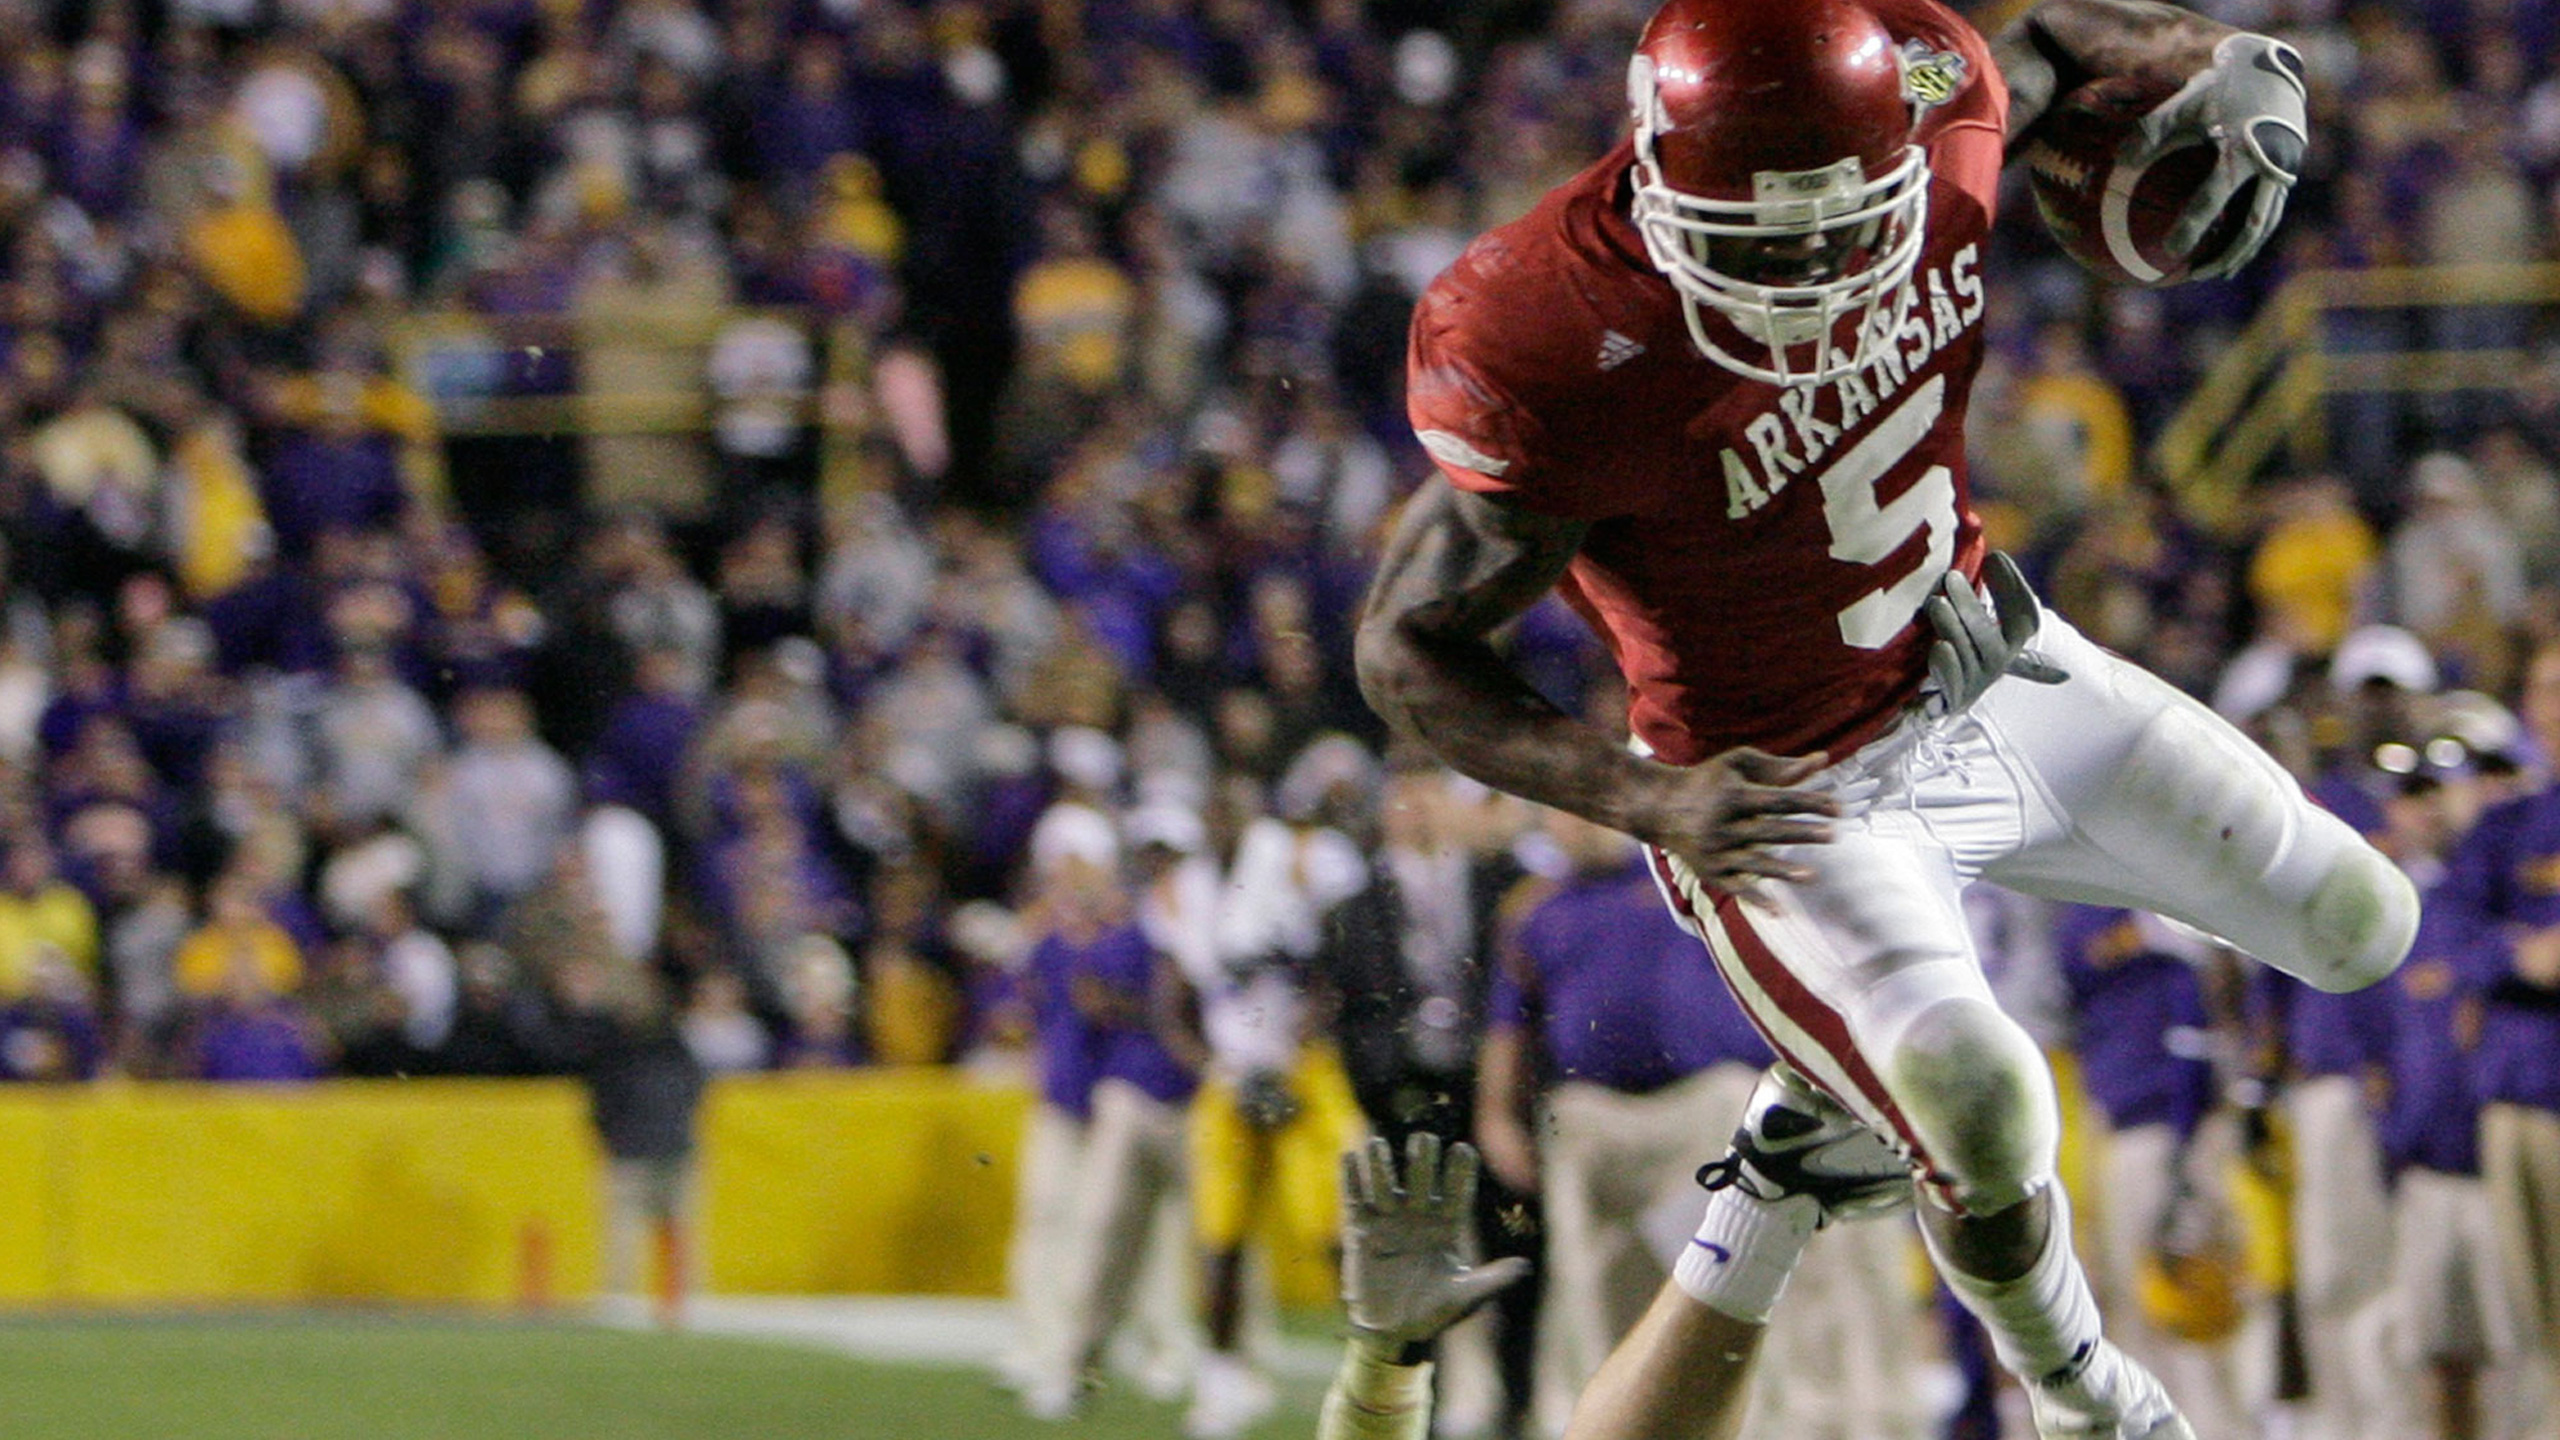 Arkansas vs. LSU - 11/23/2007 (re-air)